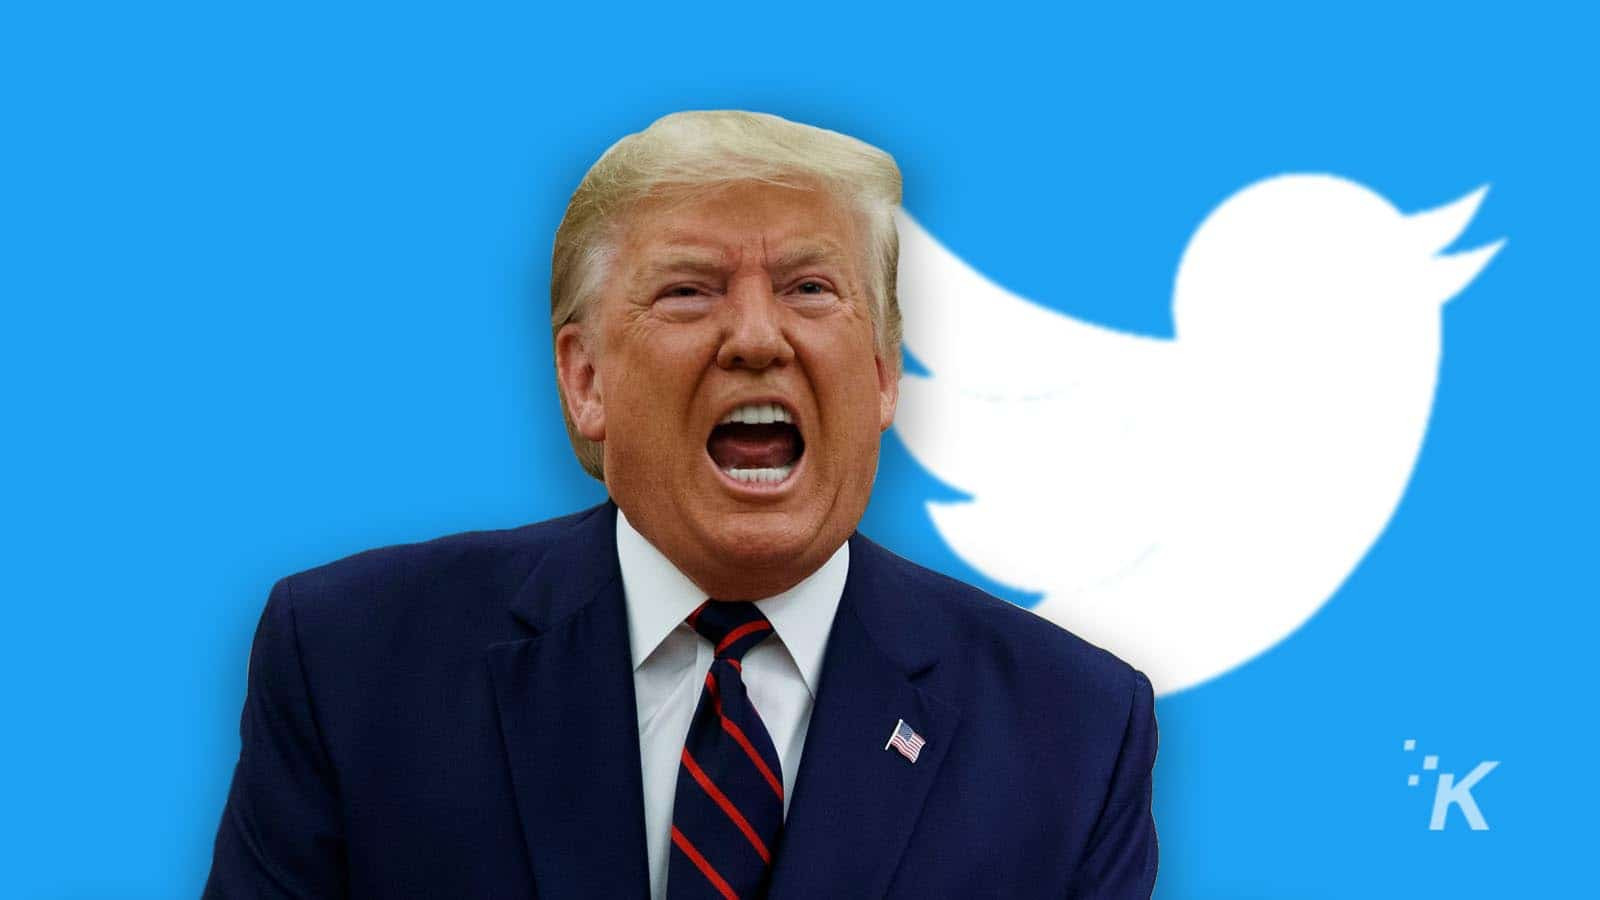 Twitter puts warning on Trump's tweet for threatening protesters with